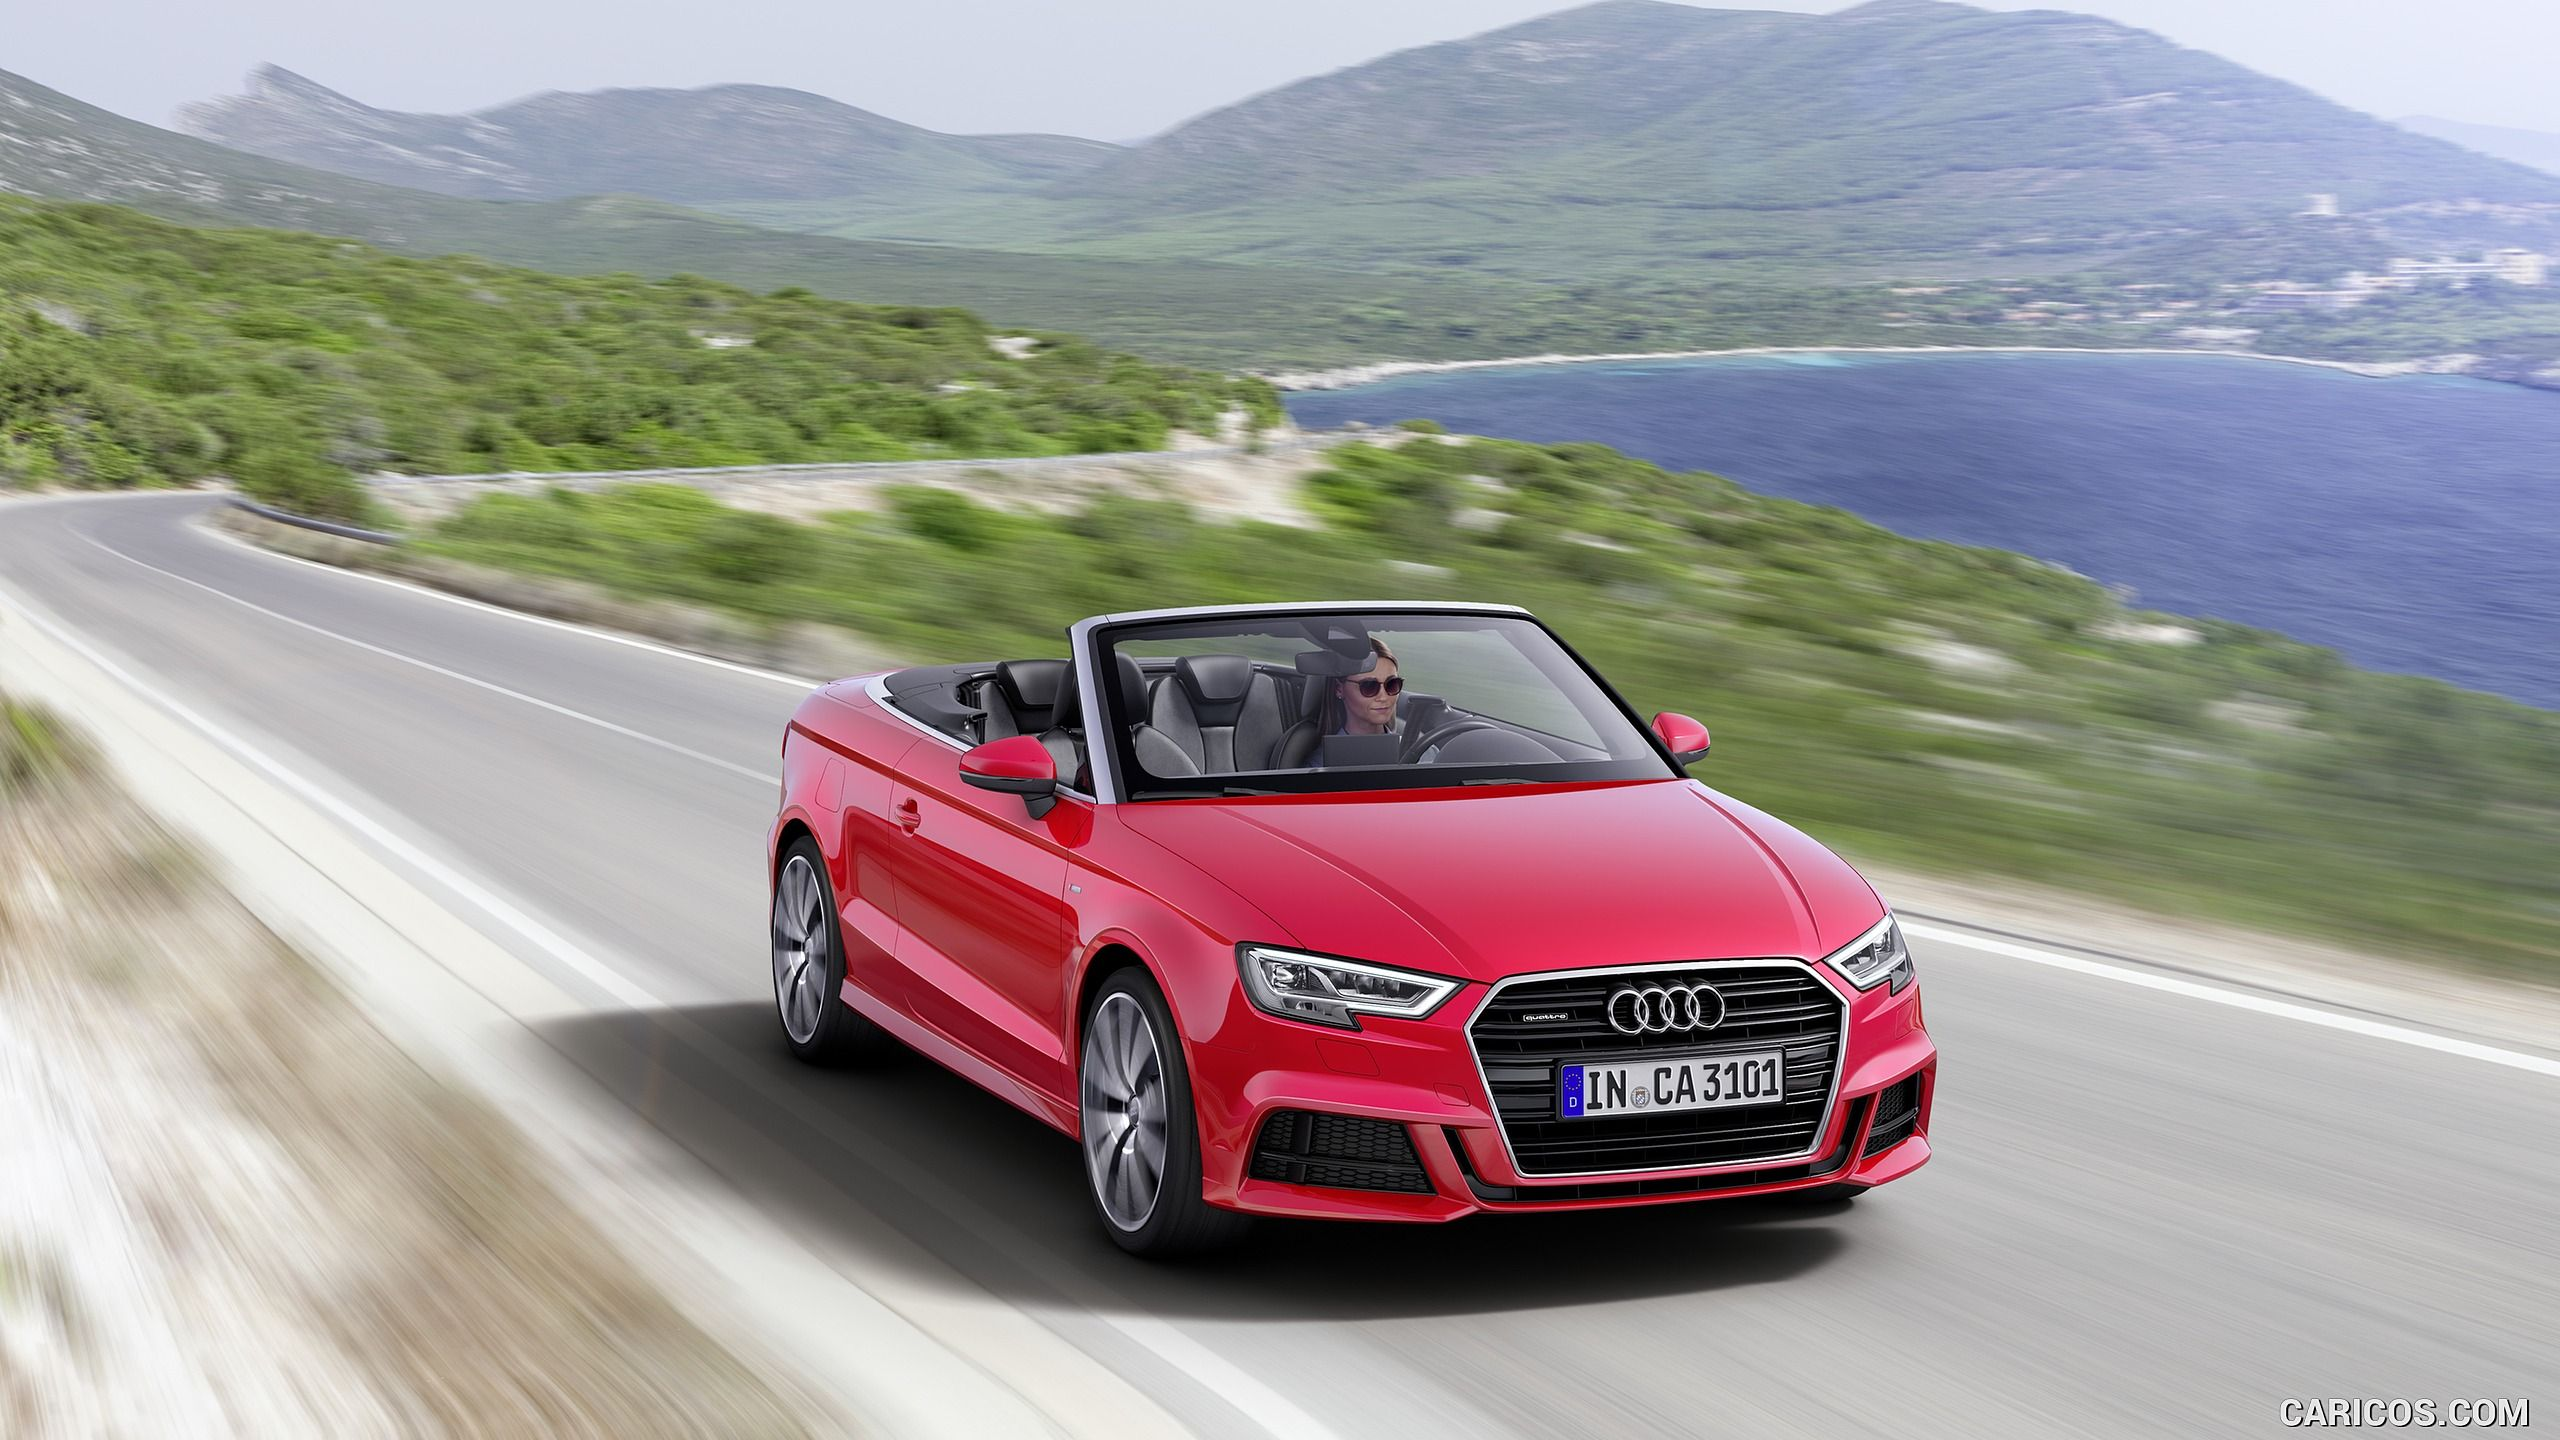 2017 Audi A3 Convertible Review Specs Price 2016 2017 Best Car Reviews Audi A3 Cabriolet A3 Cabriolet Audi A3